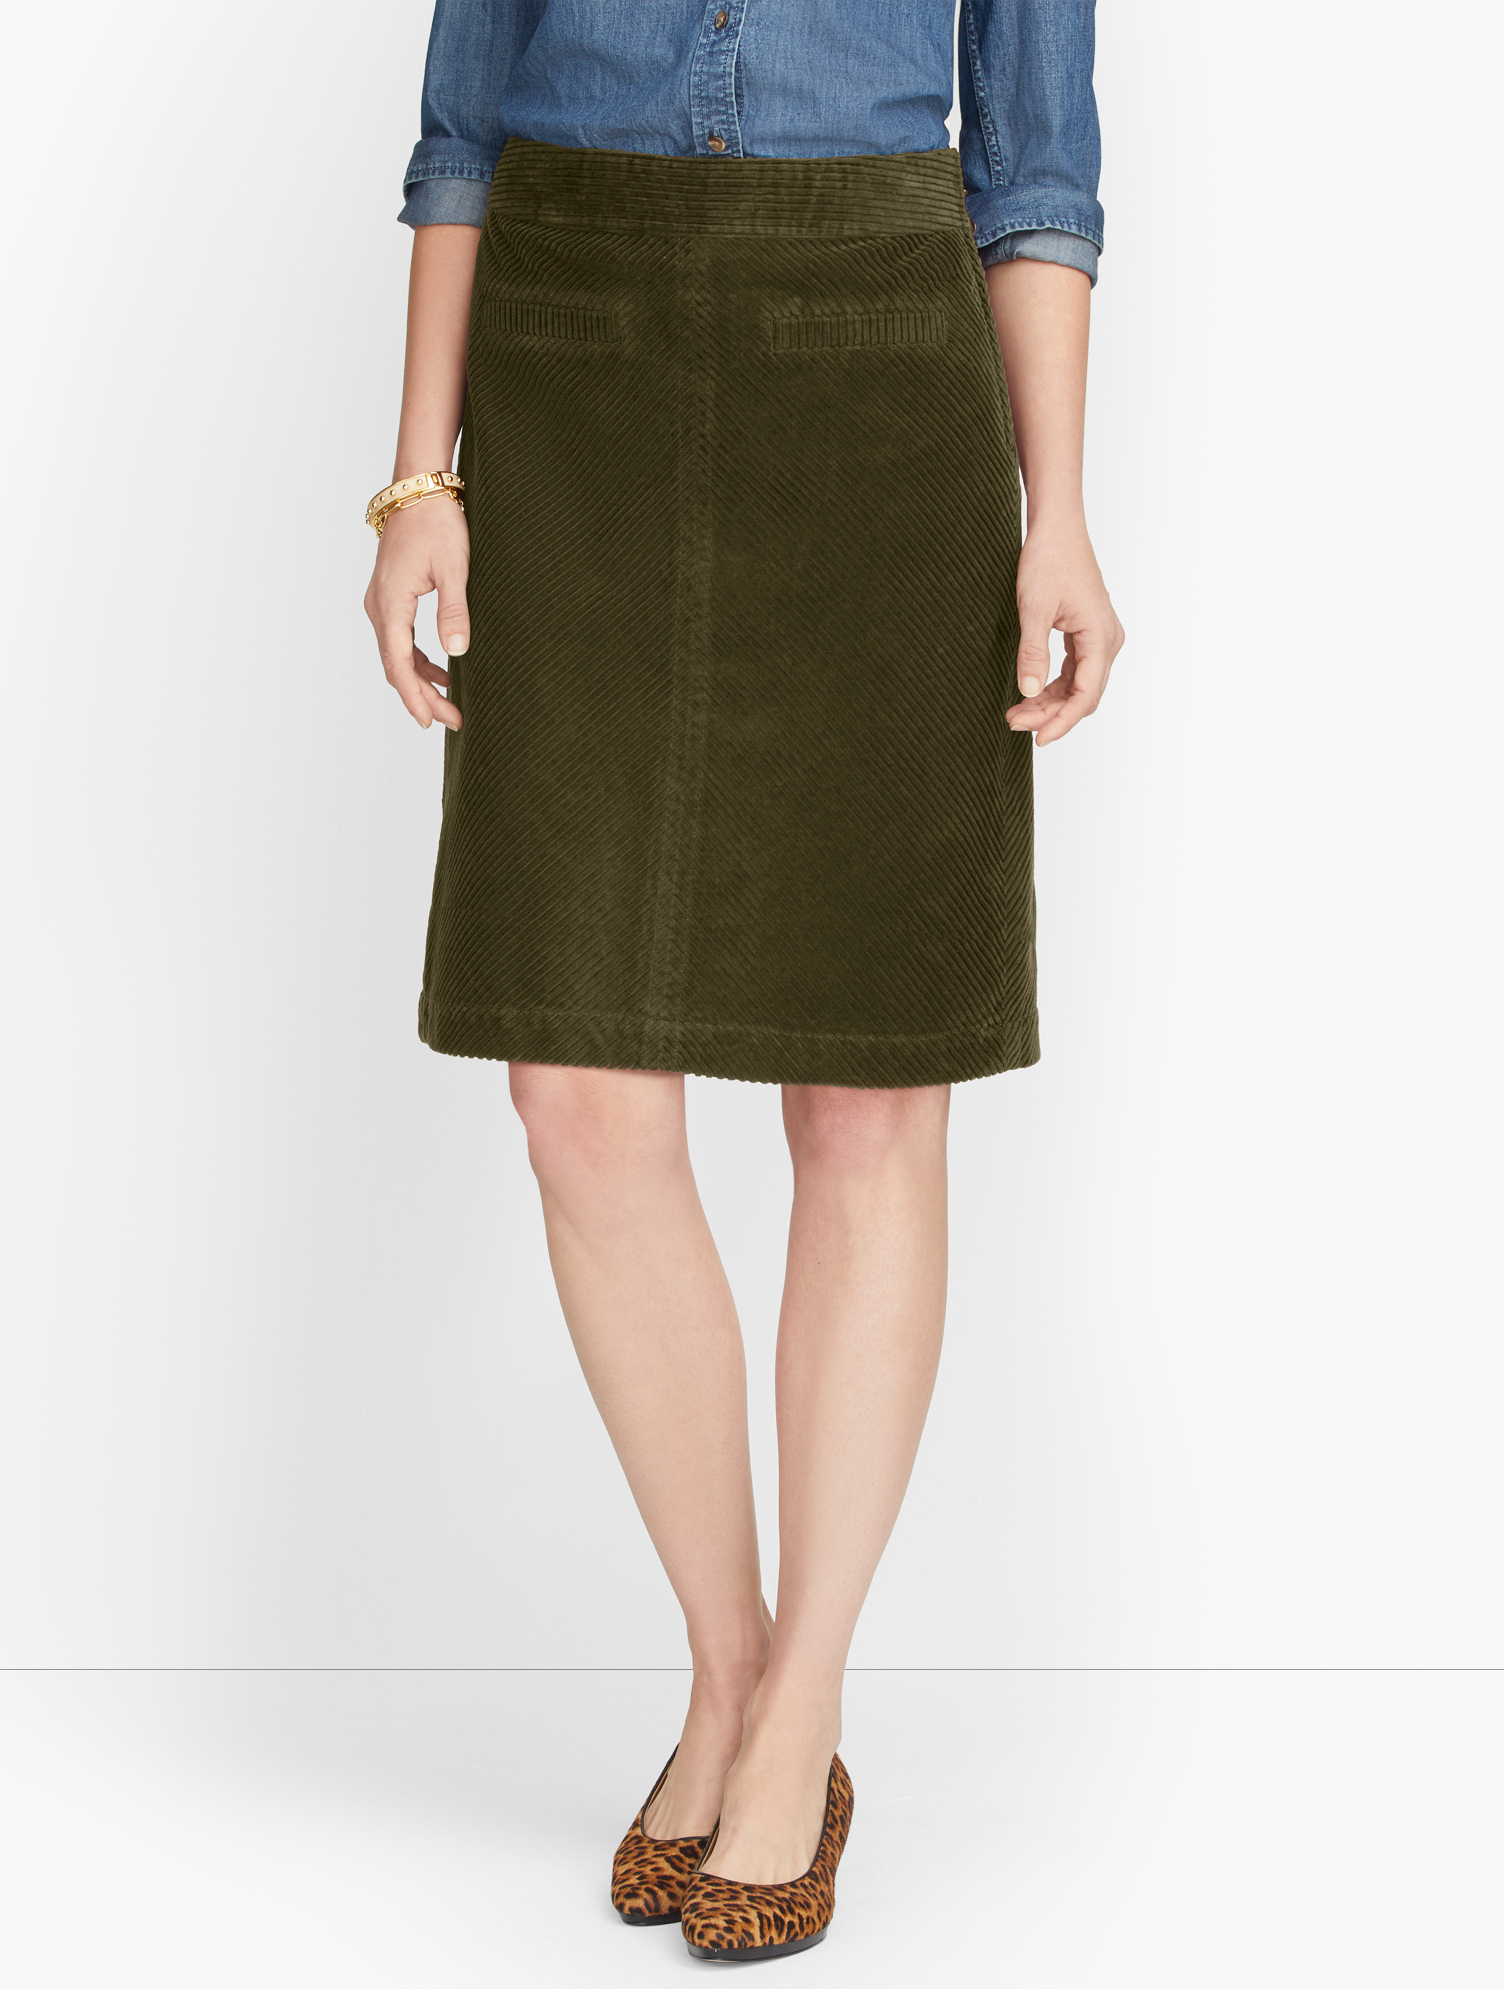 The classic A-line skirt. In lustrous wide wale corduroy. Plush. Warm. Incredibly versatile. The season\\\'s must-have. Features Silhouette: A-lineHits: Top of KneeClosure: Side zipPockets: Front WeltImported Fit: Misses: 20 1/2 inches; Petite: 19 1/2 inches Material: 100% Cotton Care: Machine Wash; Tumble Dry Wide Wale Corduroy Skirt - Olive Night - 16 - 100% Cotton Talbots